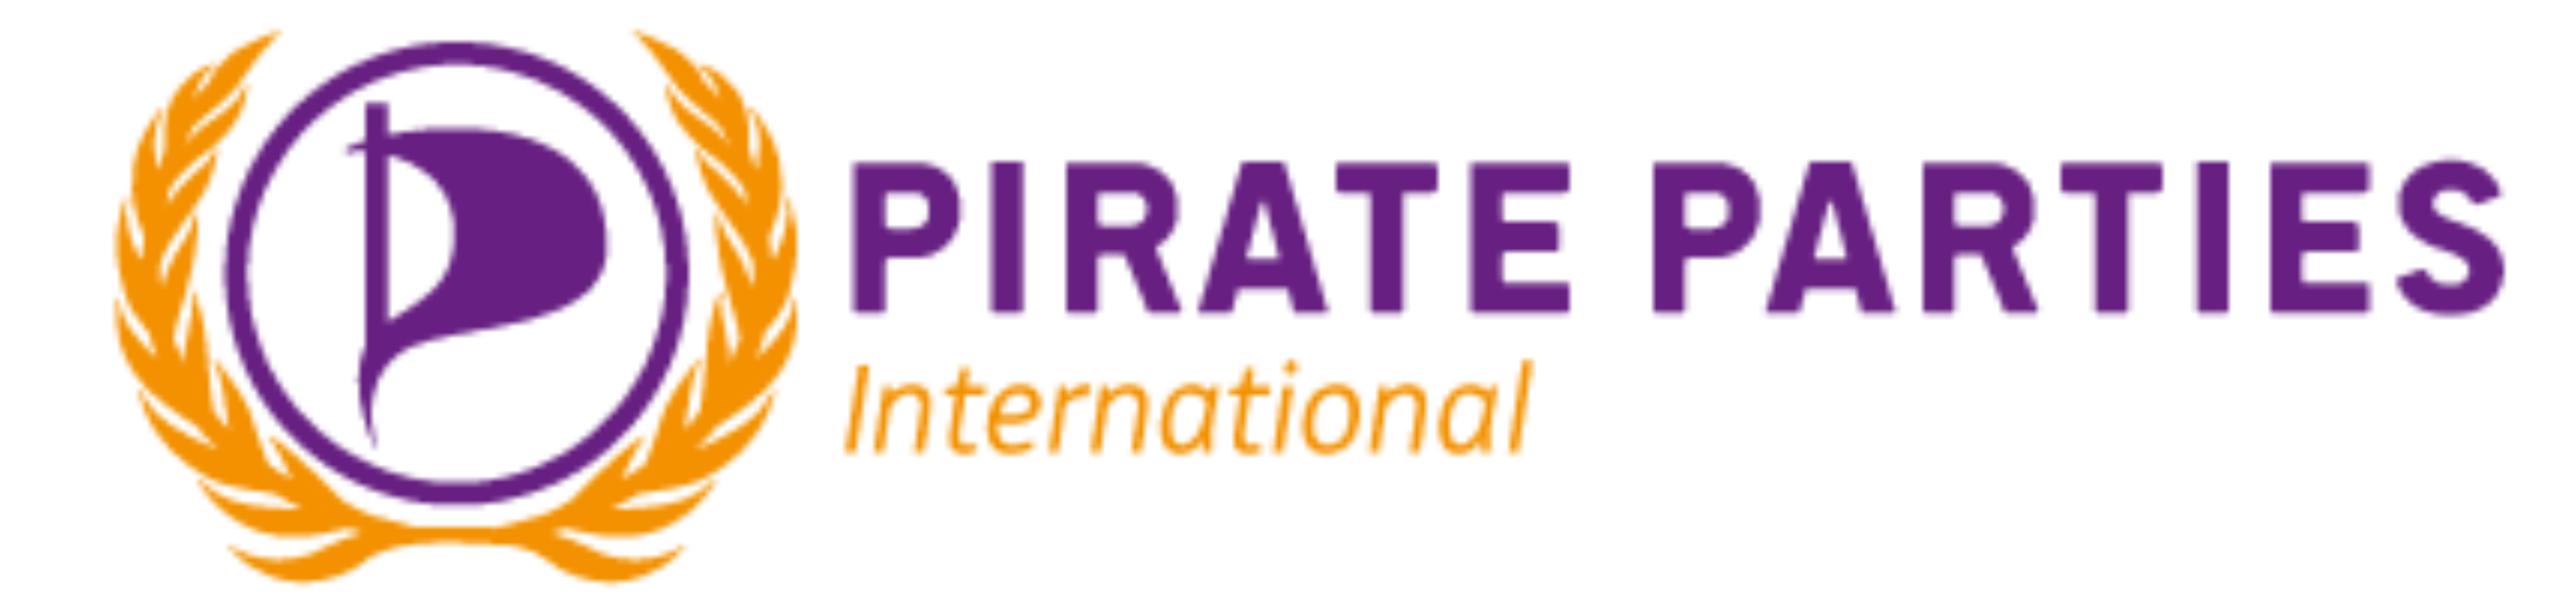 26 | July | 2017 | Pirate Parties International